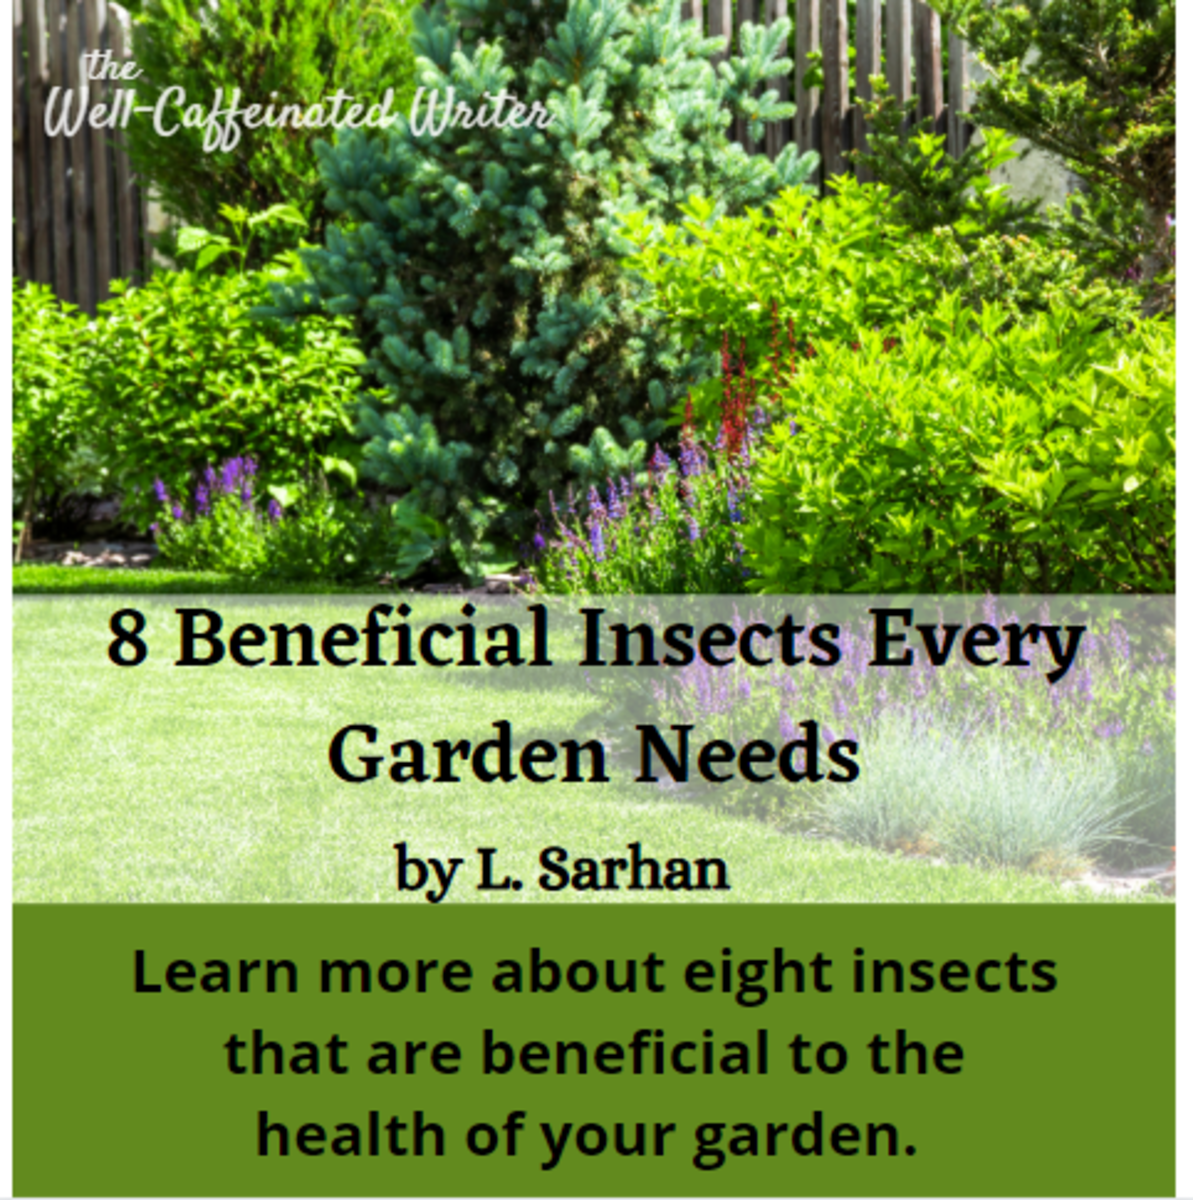 This article gives a list of eight insects that are beneficial to gardens, including what makes them beneficial and how to attract them.